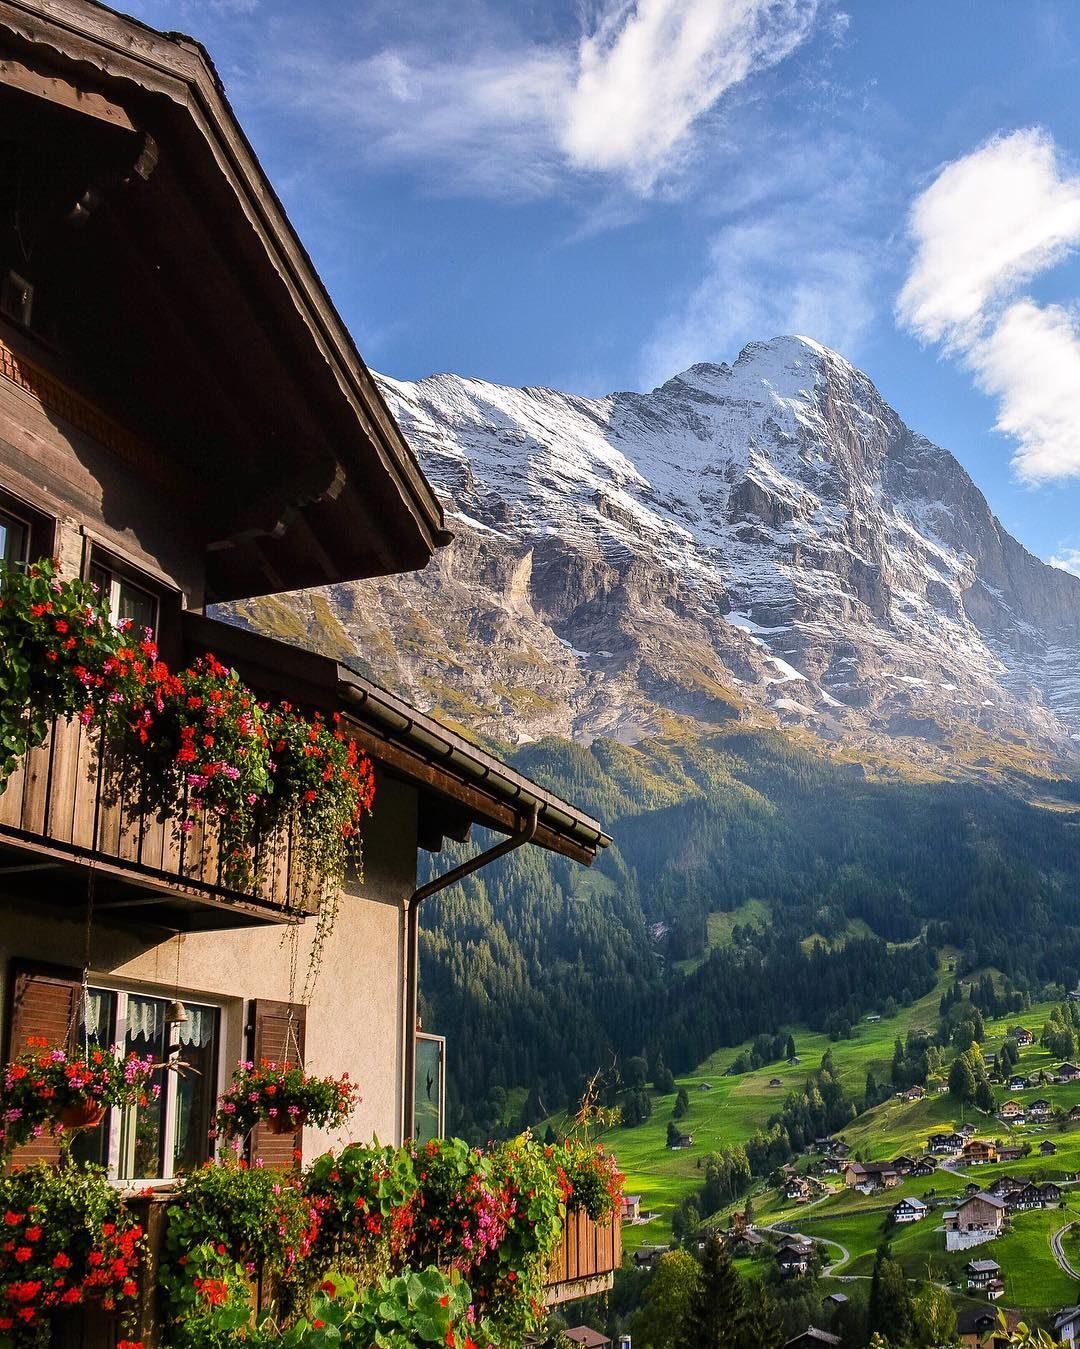 Photo by : @SennaRelax  Grindelwald is a village and municipality in the Interlaken-Oberhasli administrative district in the canton of Bern in Switzerland. Besides the village of Grindelwald the municipality also includes the settlements of Alpiglen Burglauenen Grund Itramen Mühlebach Schwendi Tschingelberg and Wargistal. Grindelwald village is located at 1034 m (3392 ft) above sea level in the Bernese Alps.  #Switzerland_Vacations #. Follow us on Facebook link in our bio by…